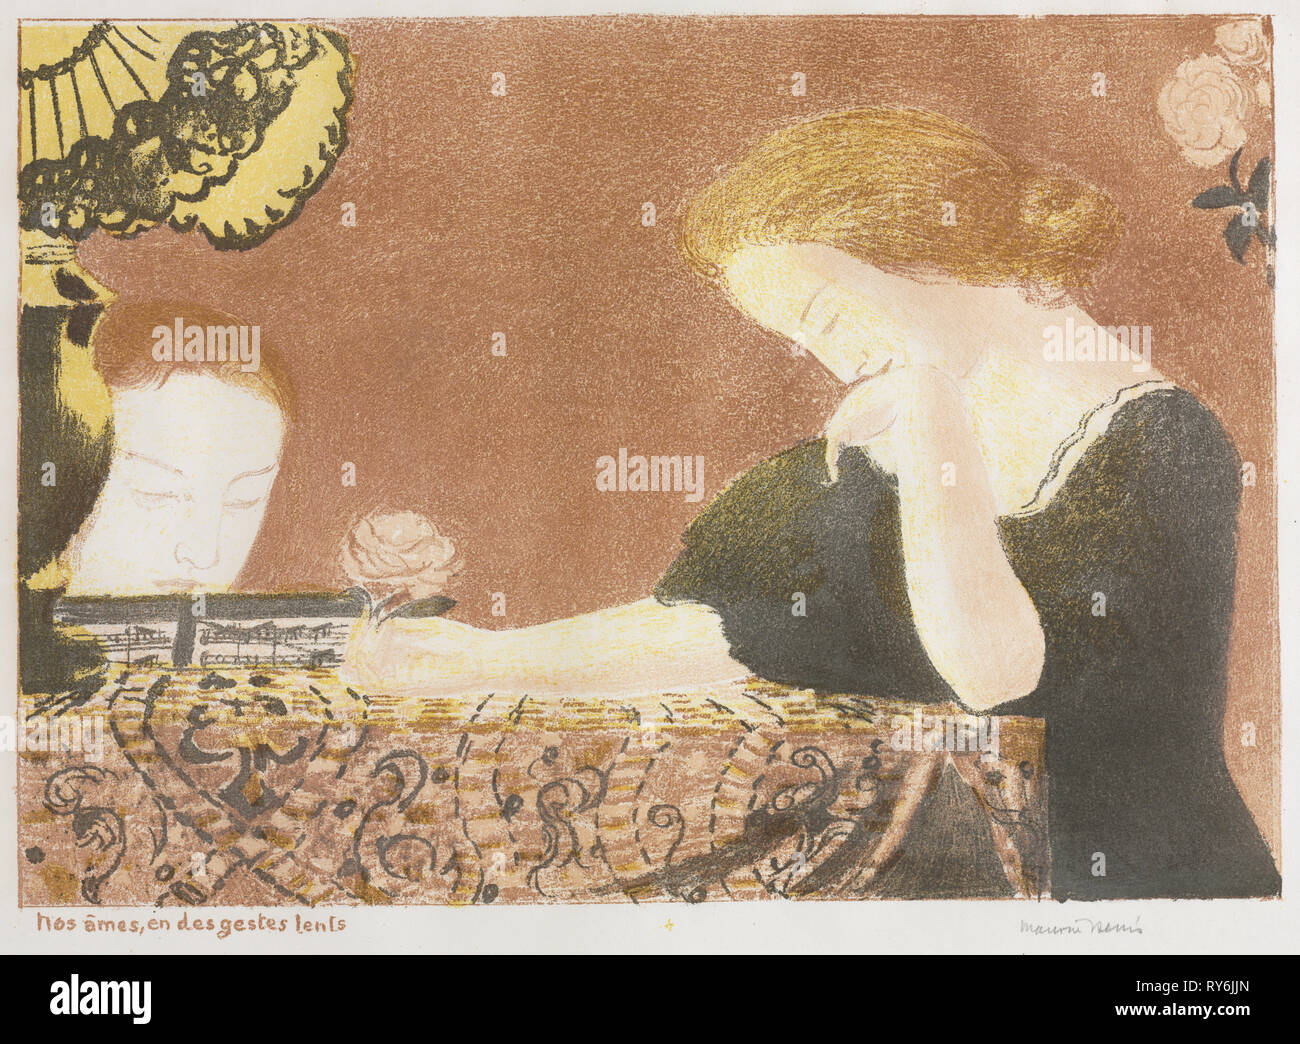 the album L'Amour: Love: Our Souls, in Slight Gestures, 1892-1898 (published 1911). Maurice Denis (French, 1870-1943), Ambroise Vollard, Paris, 1911. Color lithograph; sheet: 40.5 x 53.4 cm (15 15/16 x 21 in.); image: 28.3 x 40.1 cm (11 1/8 x 15 13/16 in - Stock Image